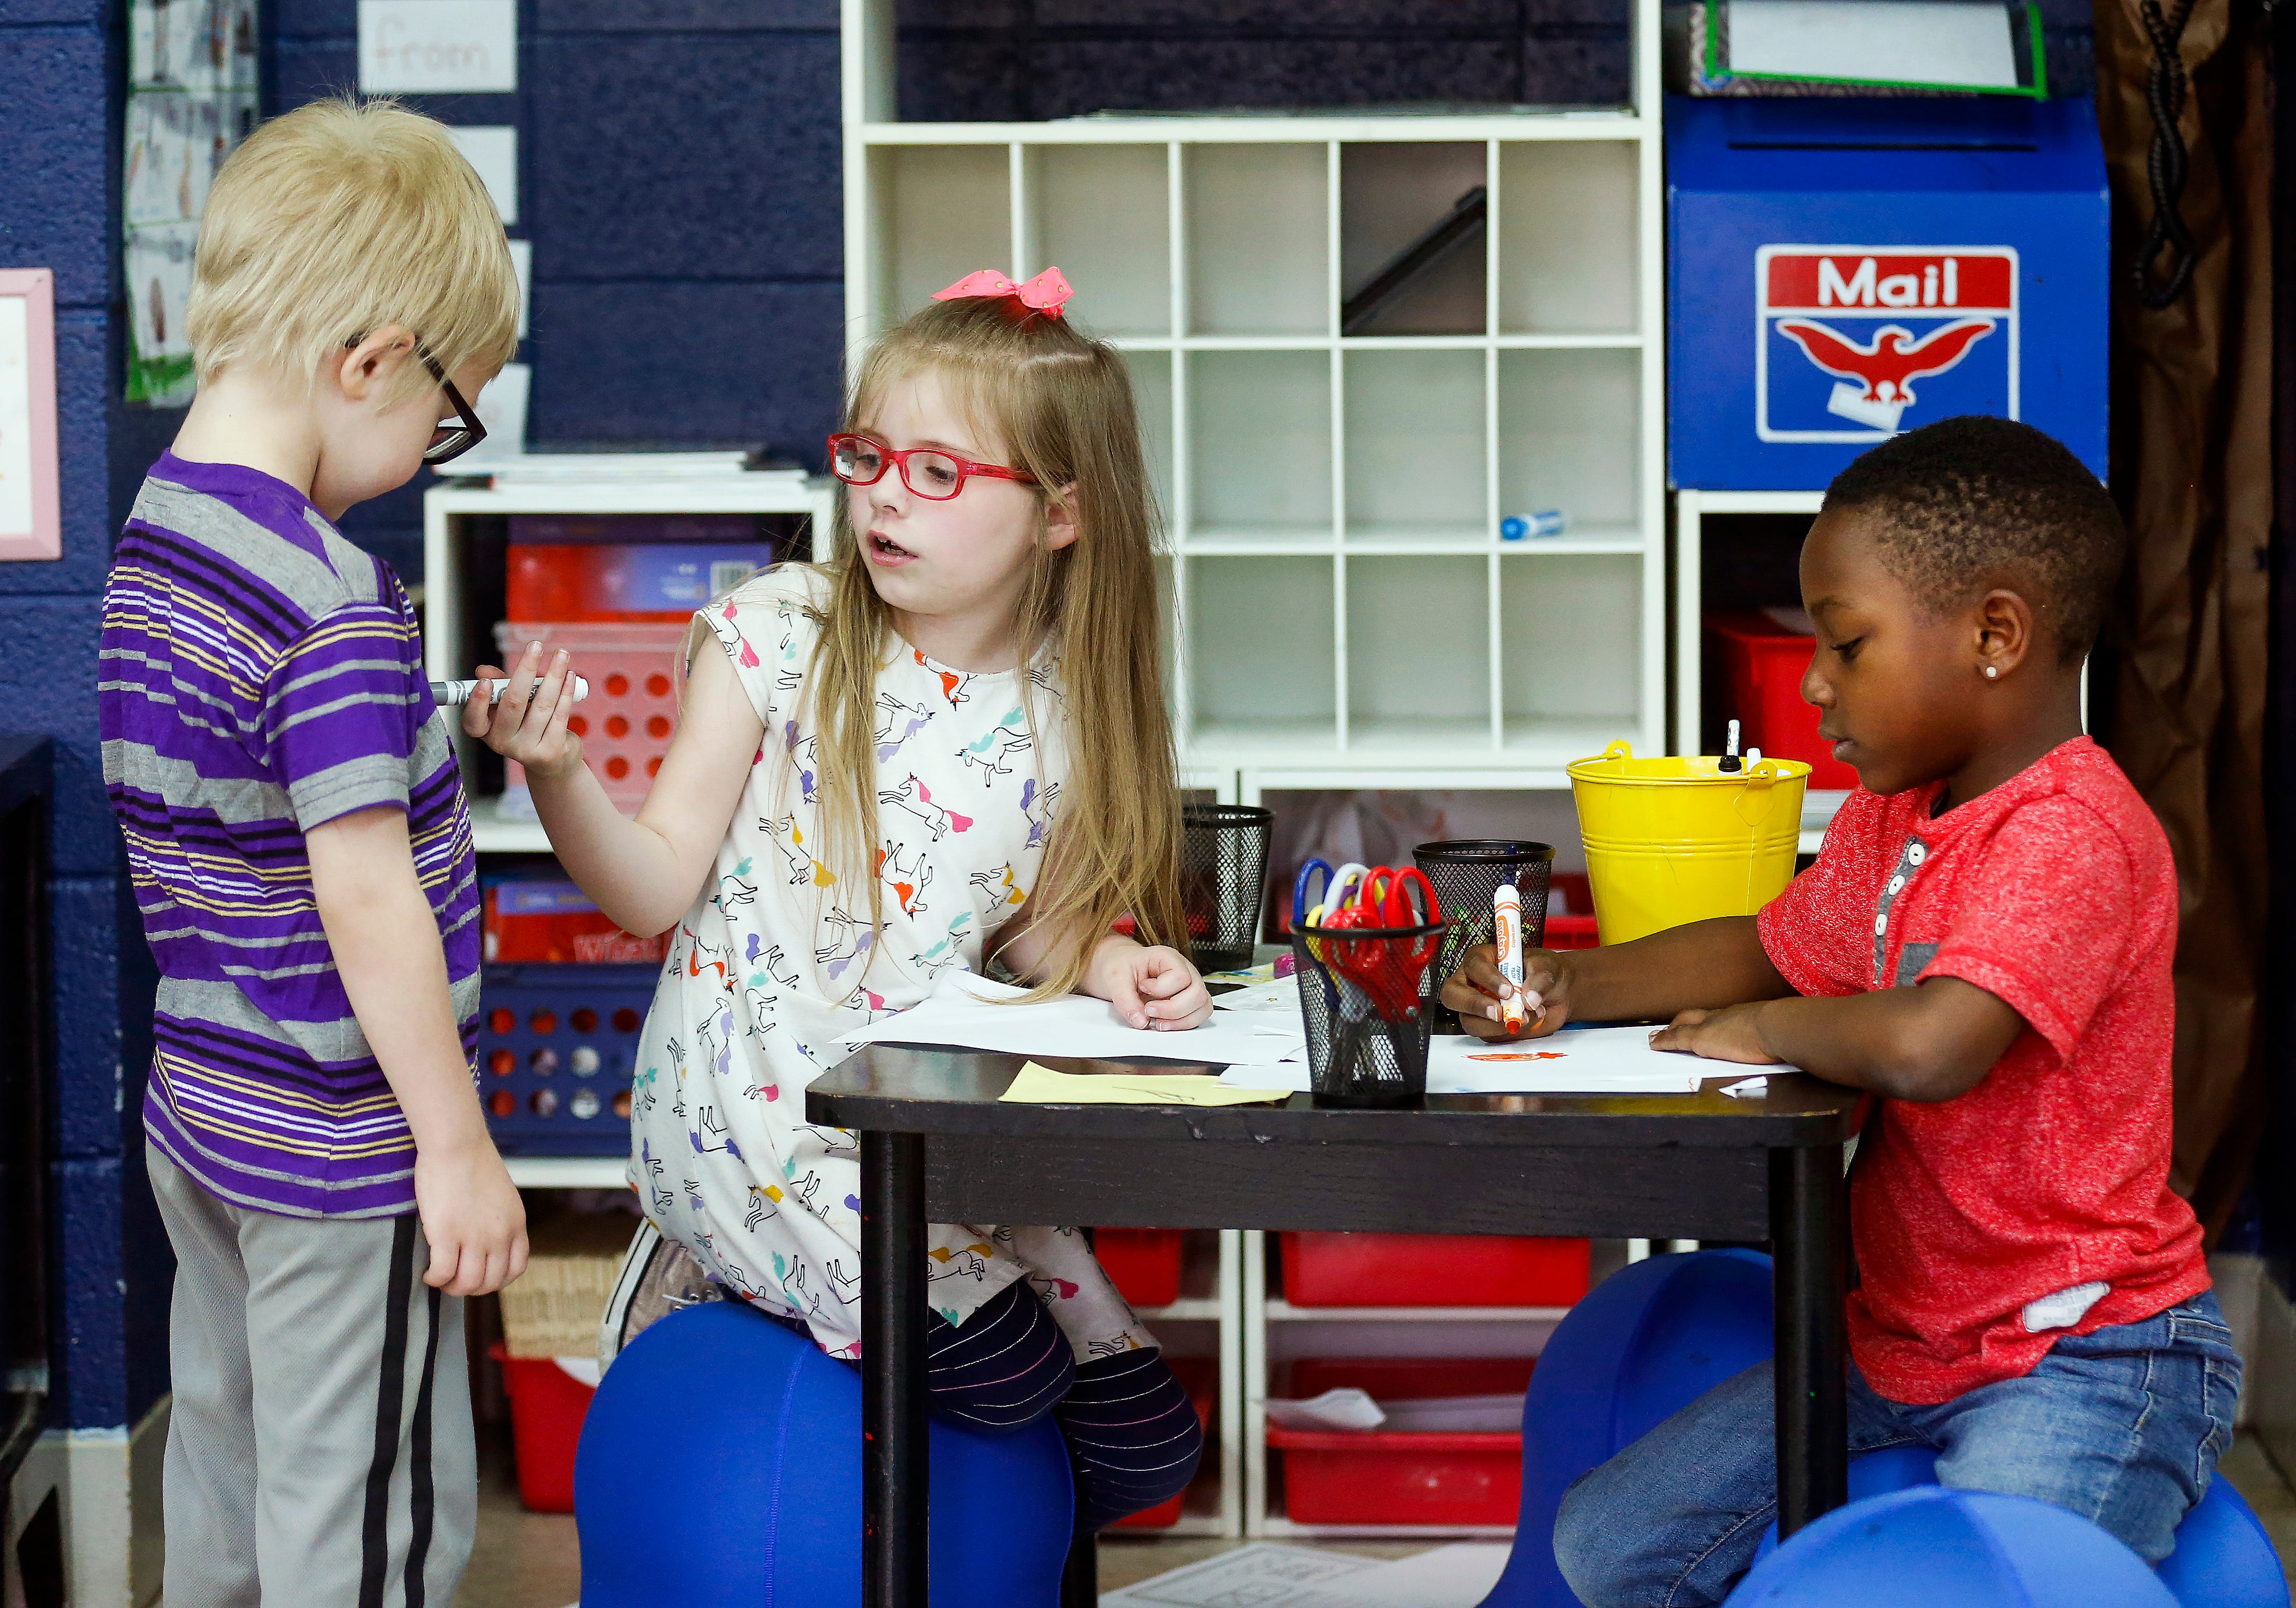 Harley May, center, talks with Calven Rudd, left, as Ayden Nelson does his work in Michelle Pickett's kindergarten class at Cowden Elementary School on Tuesday, April 23, 2019.